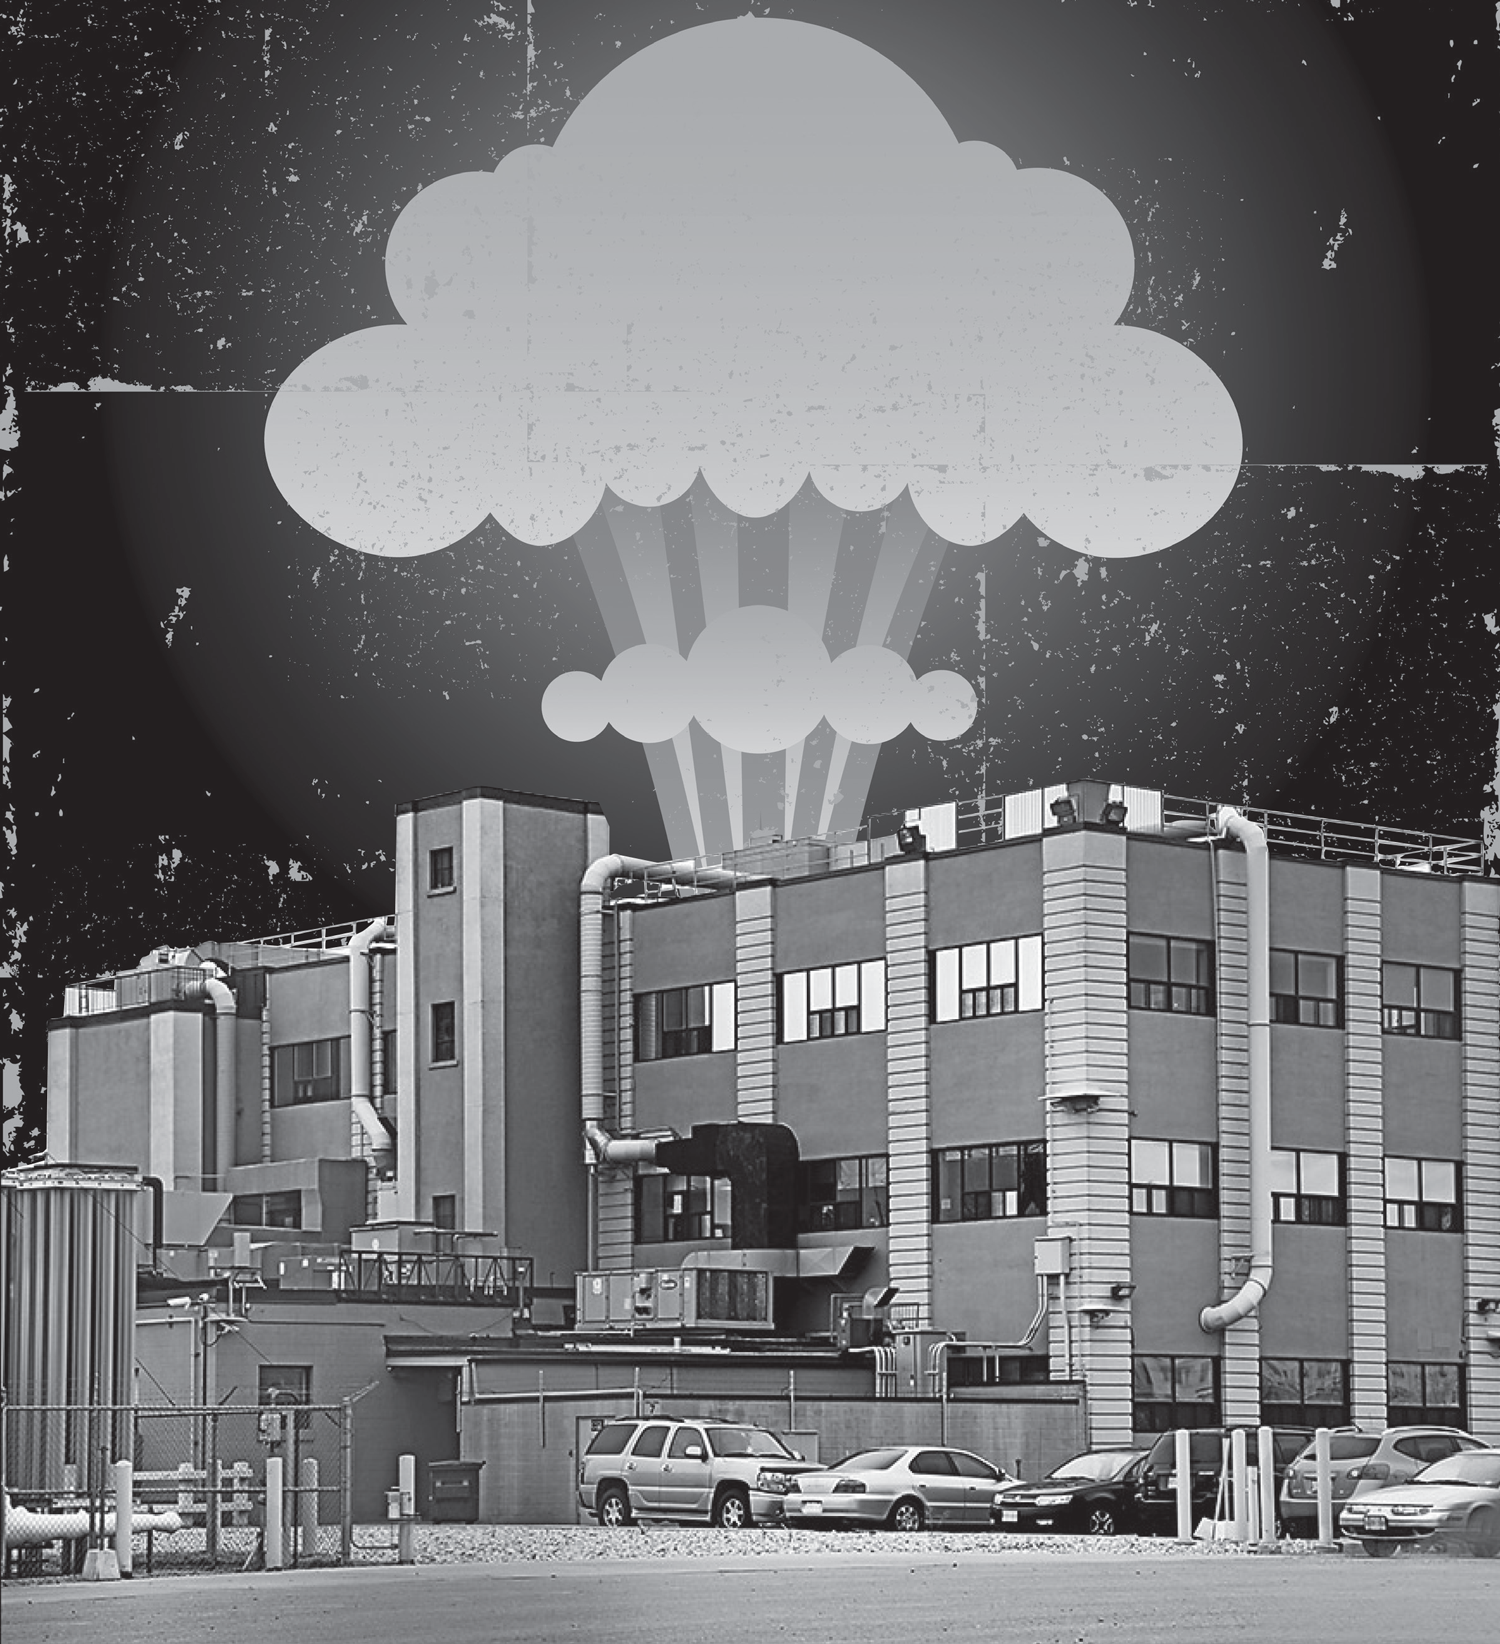 Nuclear cloud exploding from BWX Technologies facility